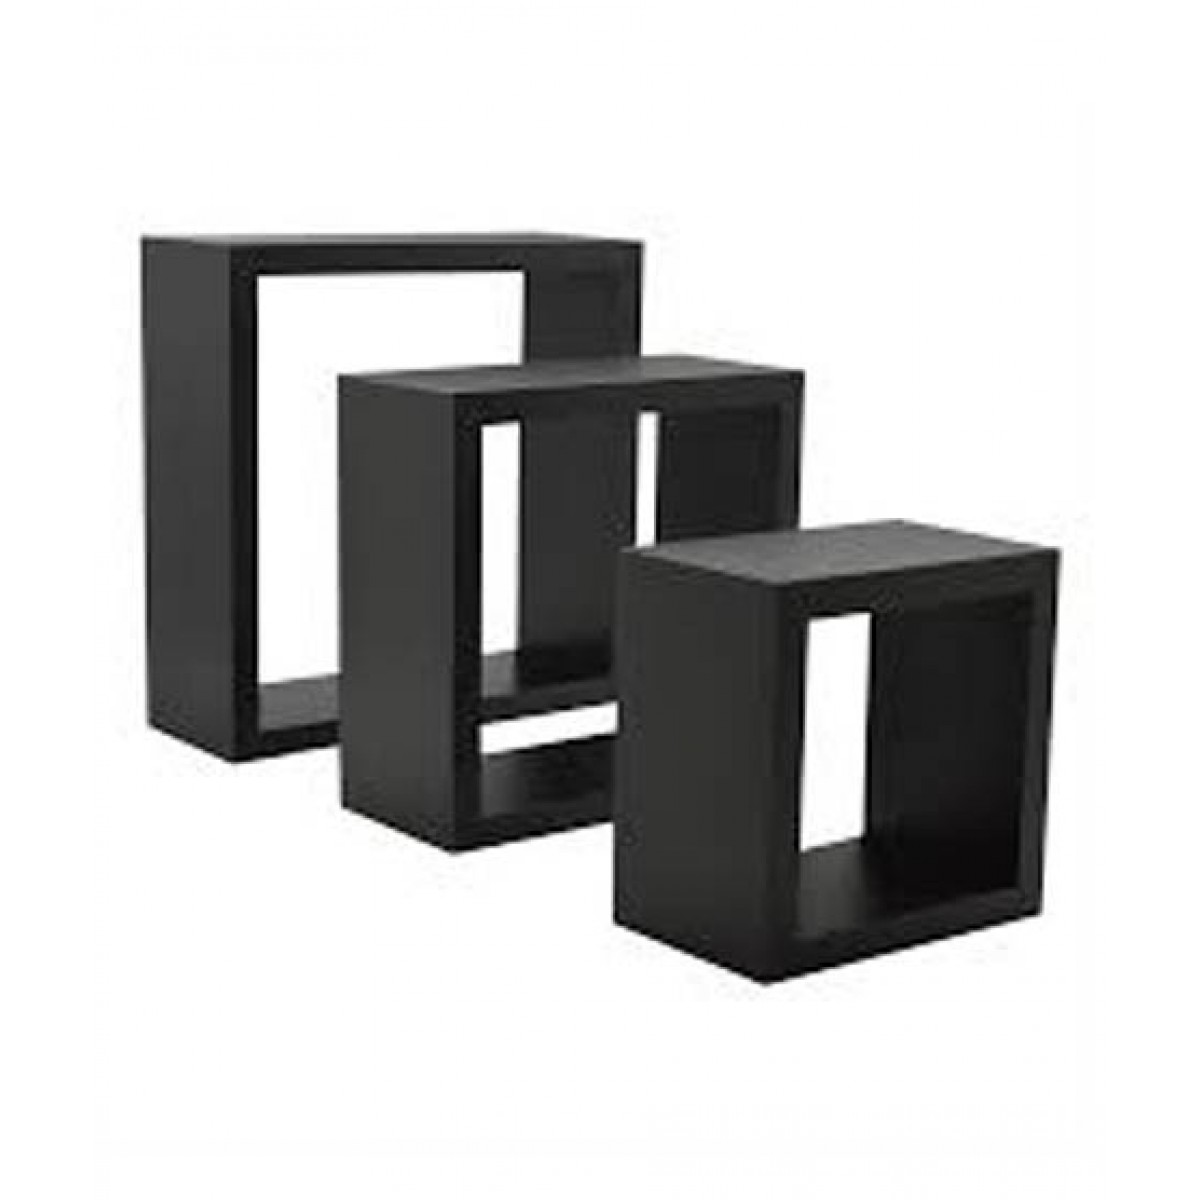 Wood World Cubical Shelf Black - Pack Of 3